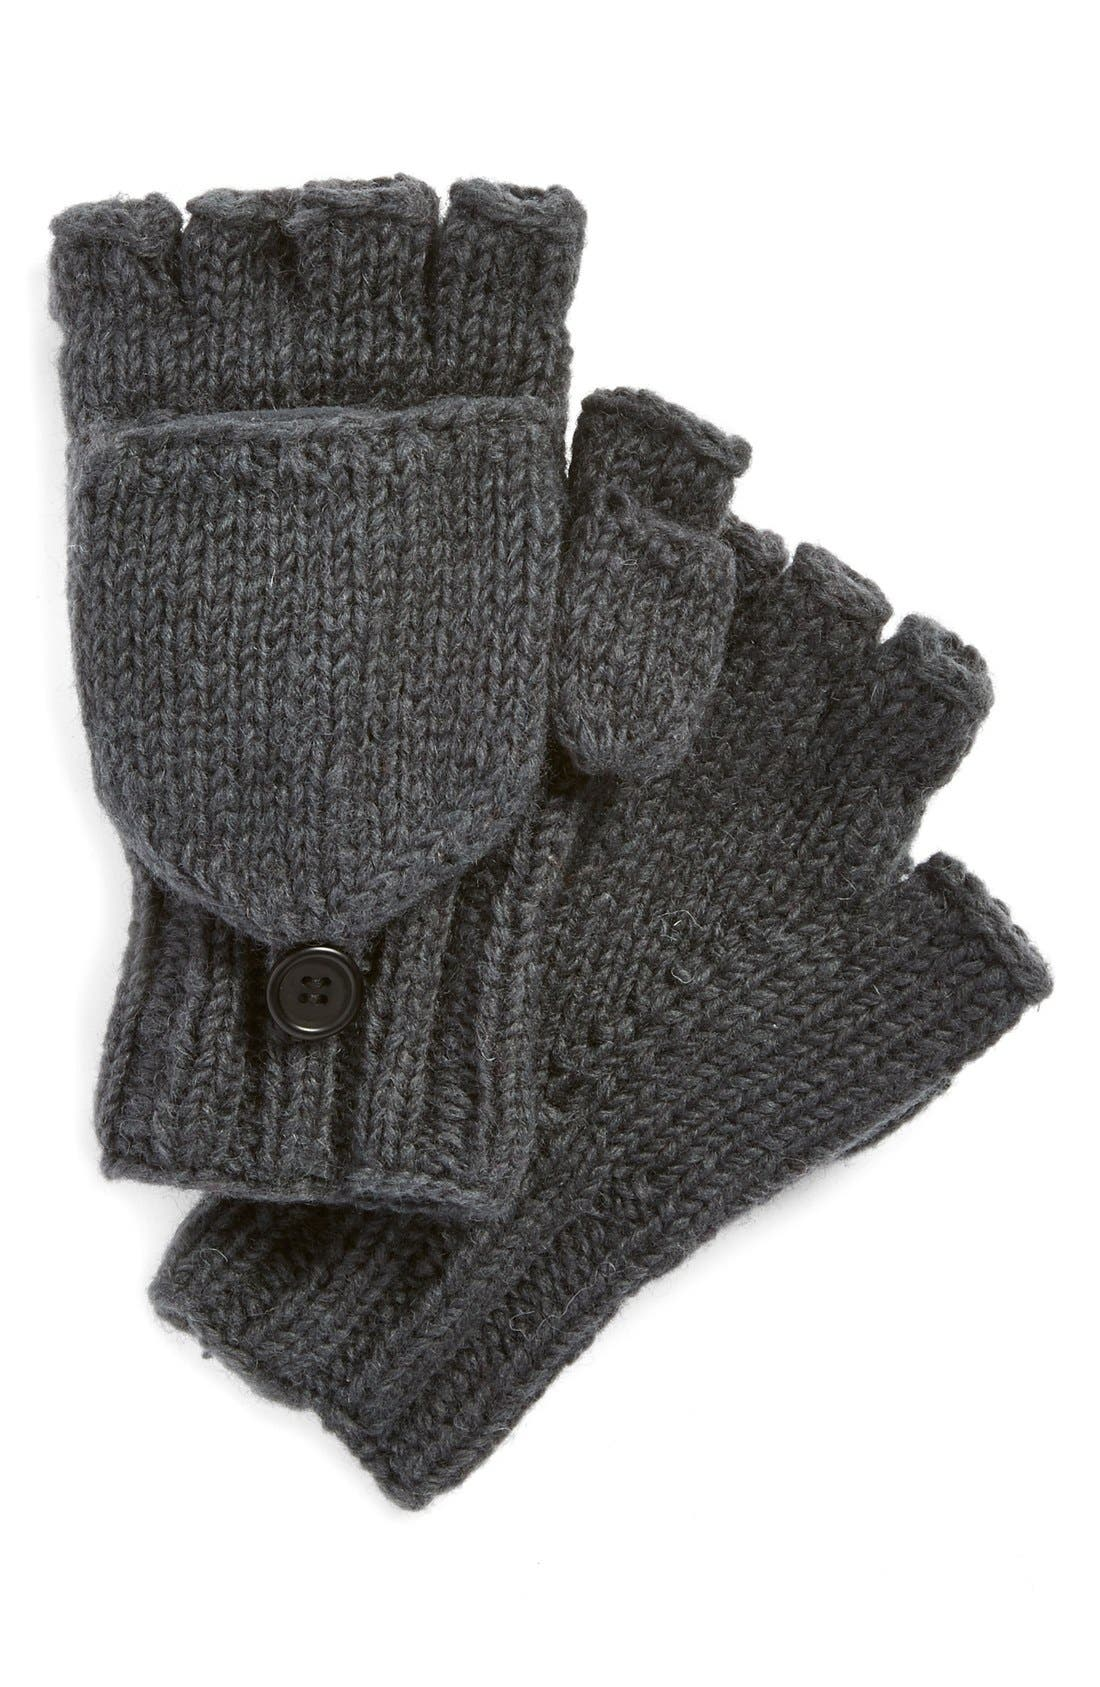 Main Image - Nirvanna Designs Convertible Fingerless Gloves